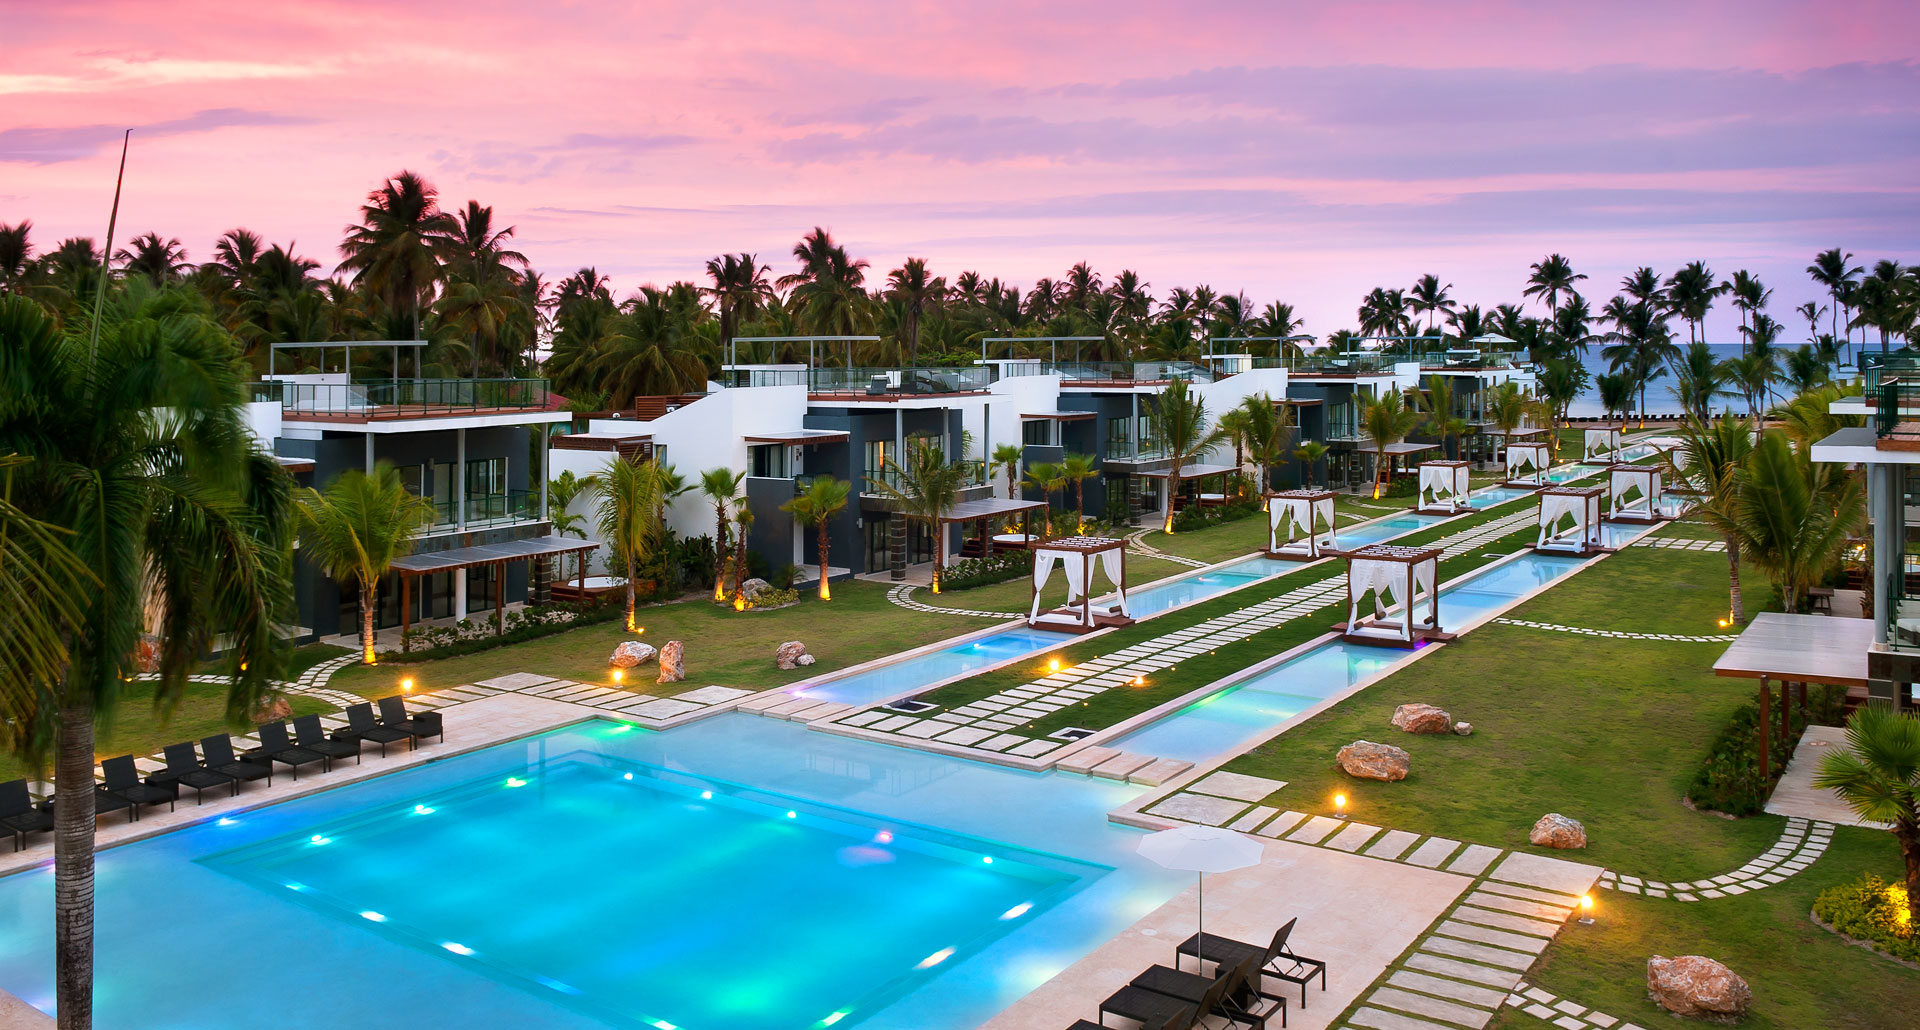 Sublime Samana - boutique hotel in Las Terrenas